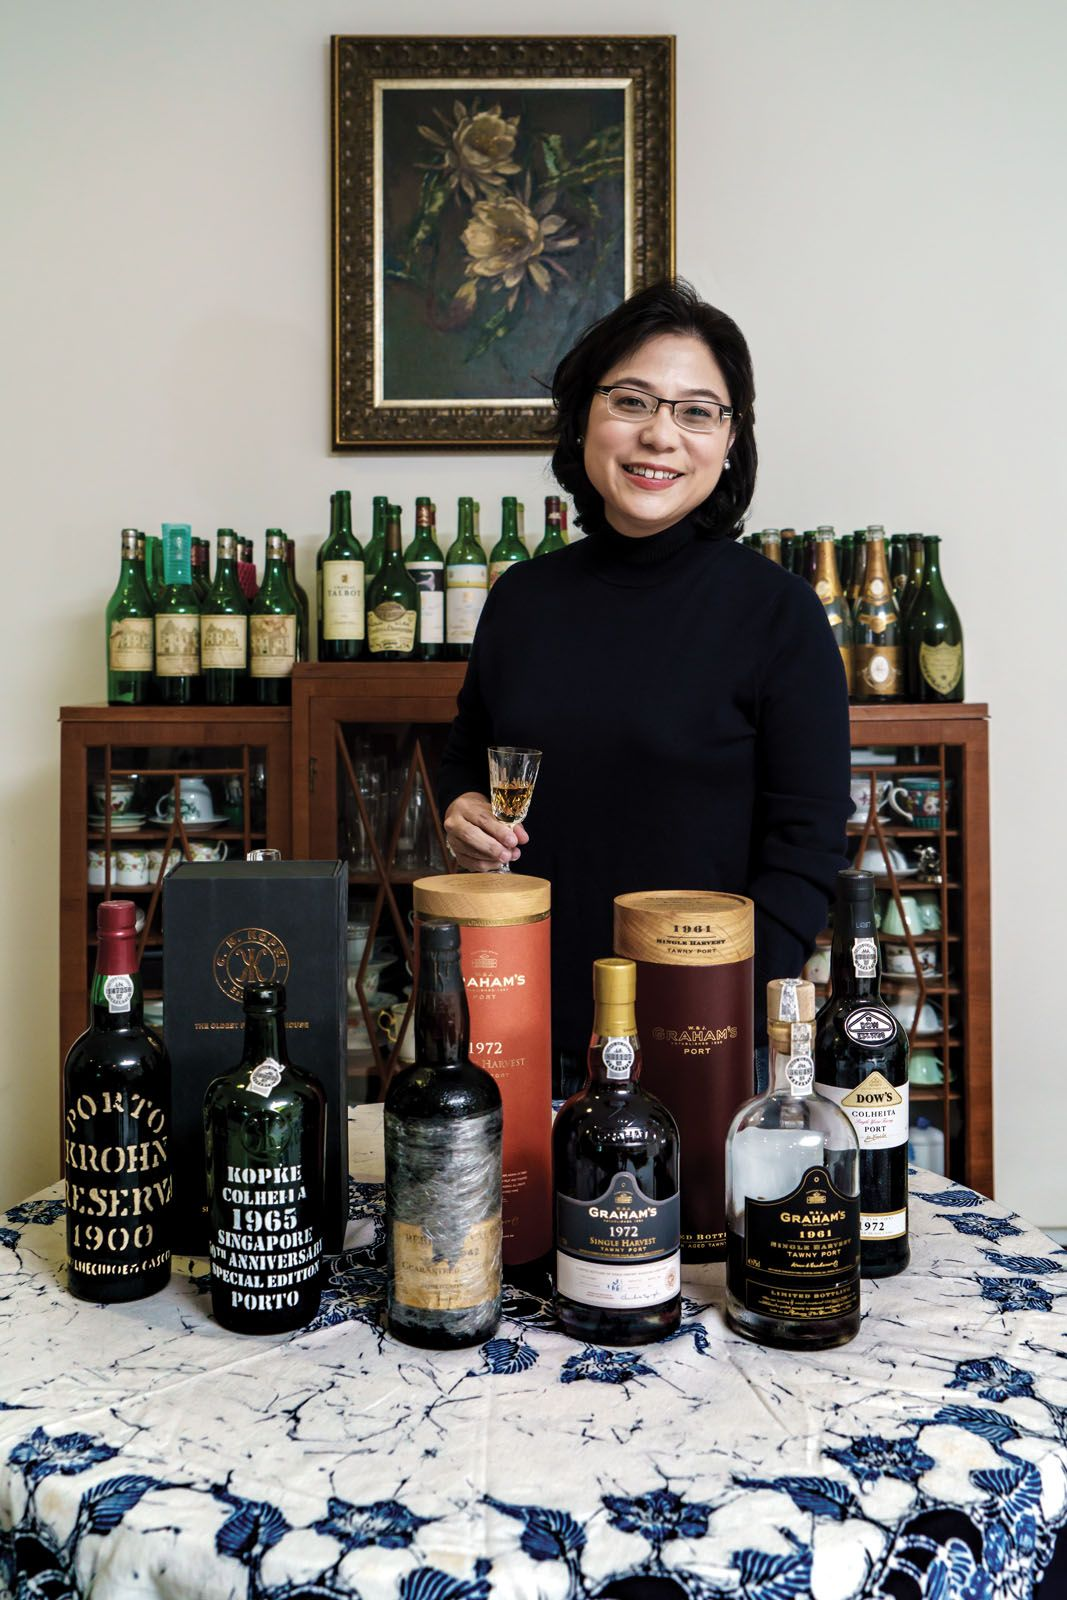 Watch: A Champagne Collector With 3,000 Bottles In 'Remarkable Living', A Singapore Tatler X CNA Luxury TV Series